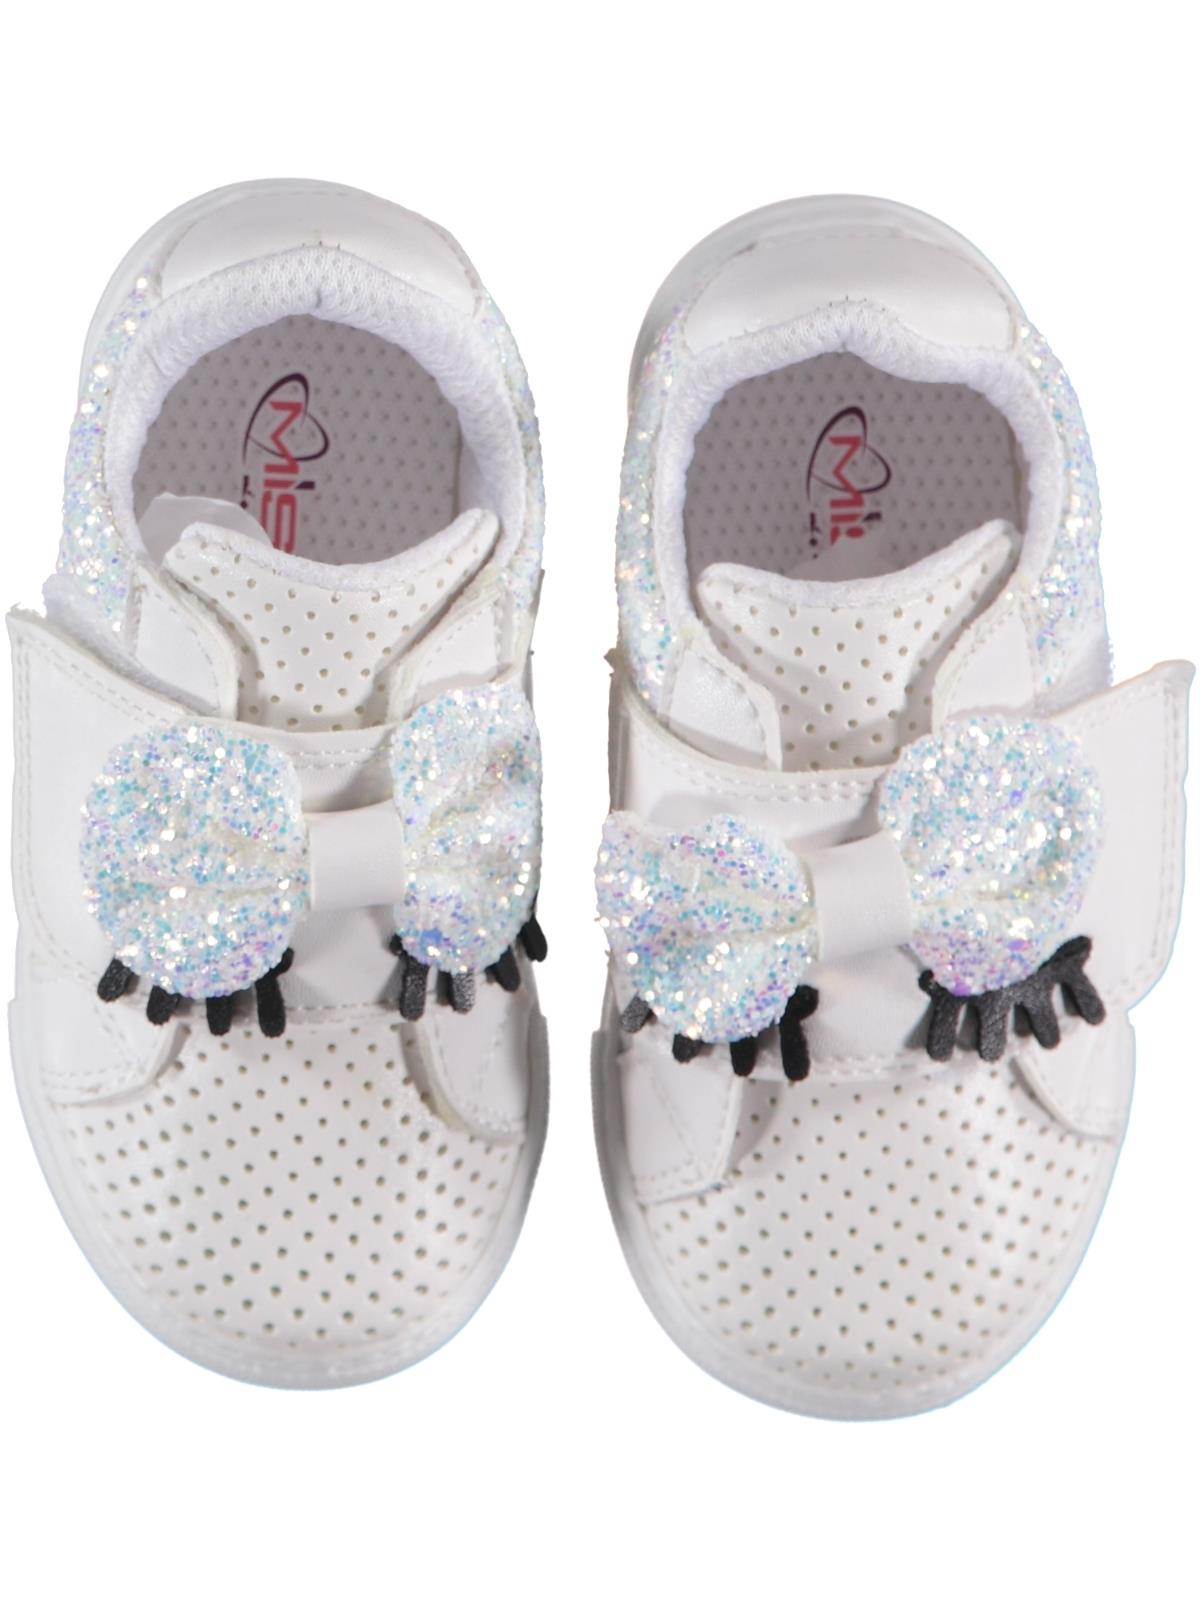 Missiva White Baby Girl Sneakers 21-25 Number